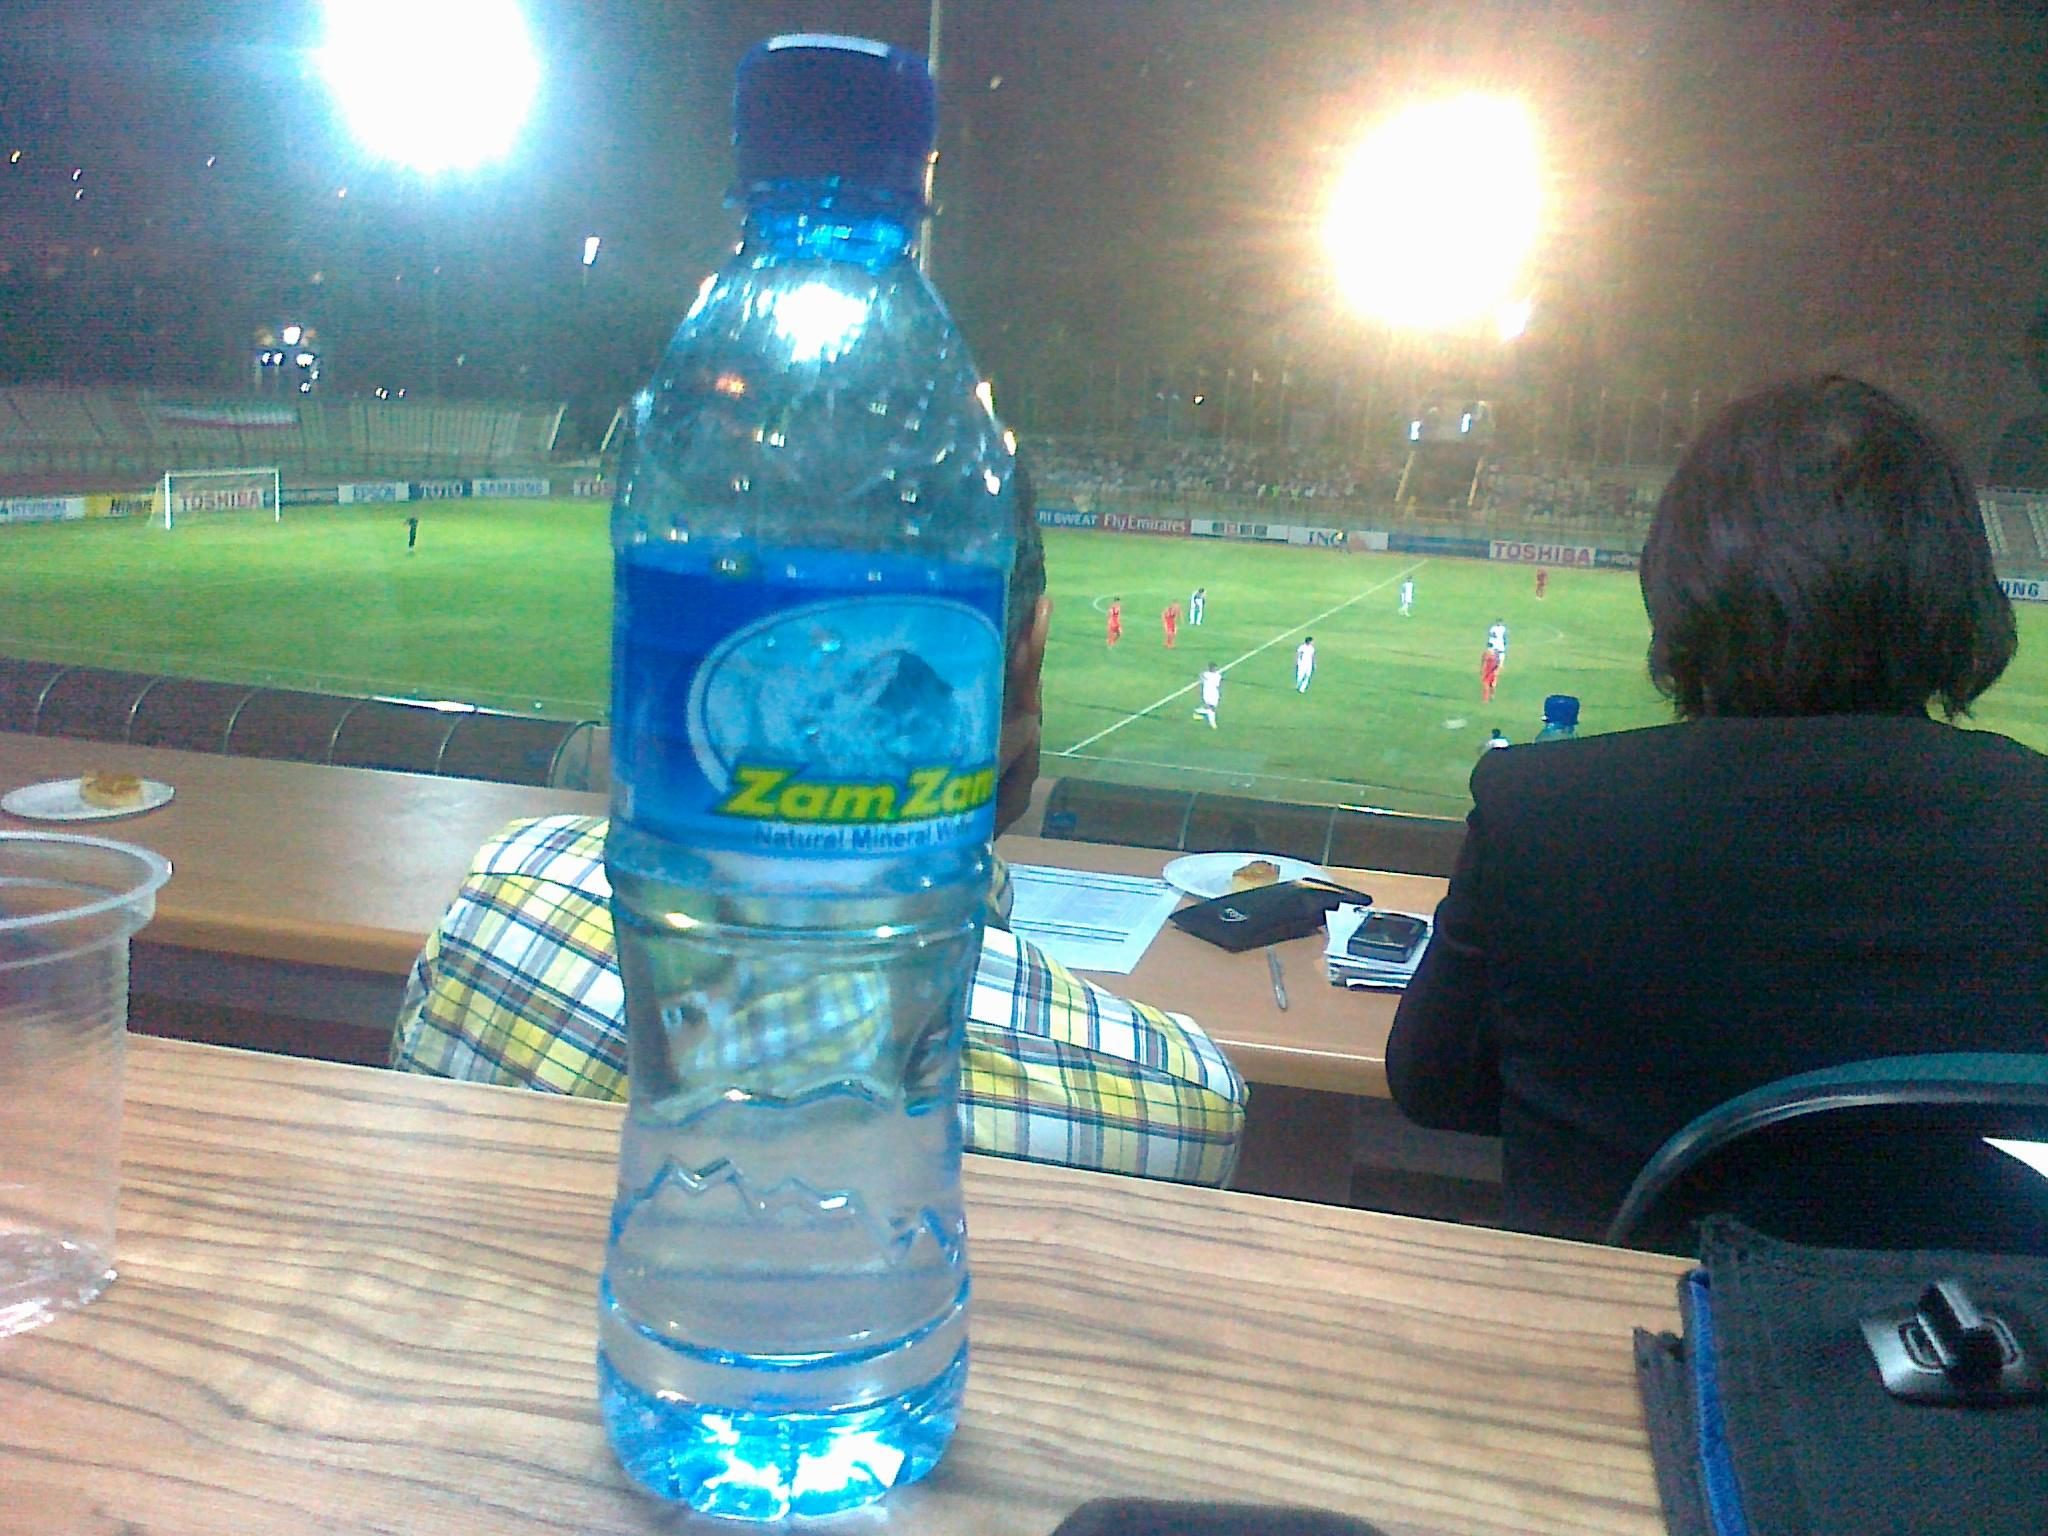 Pocari Sweat or Iranian Zam Zam